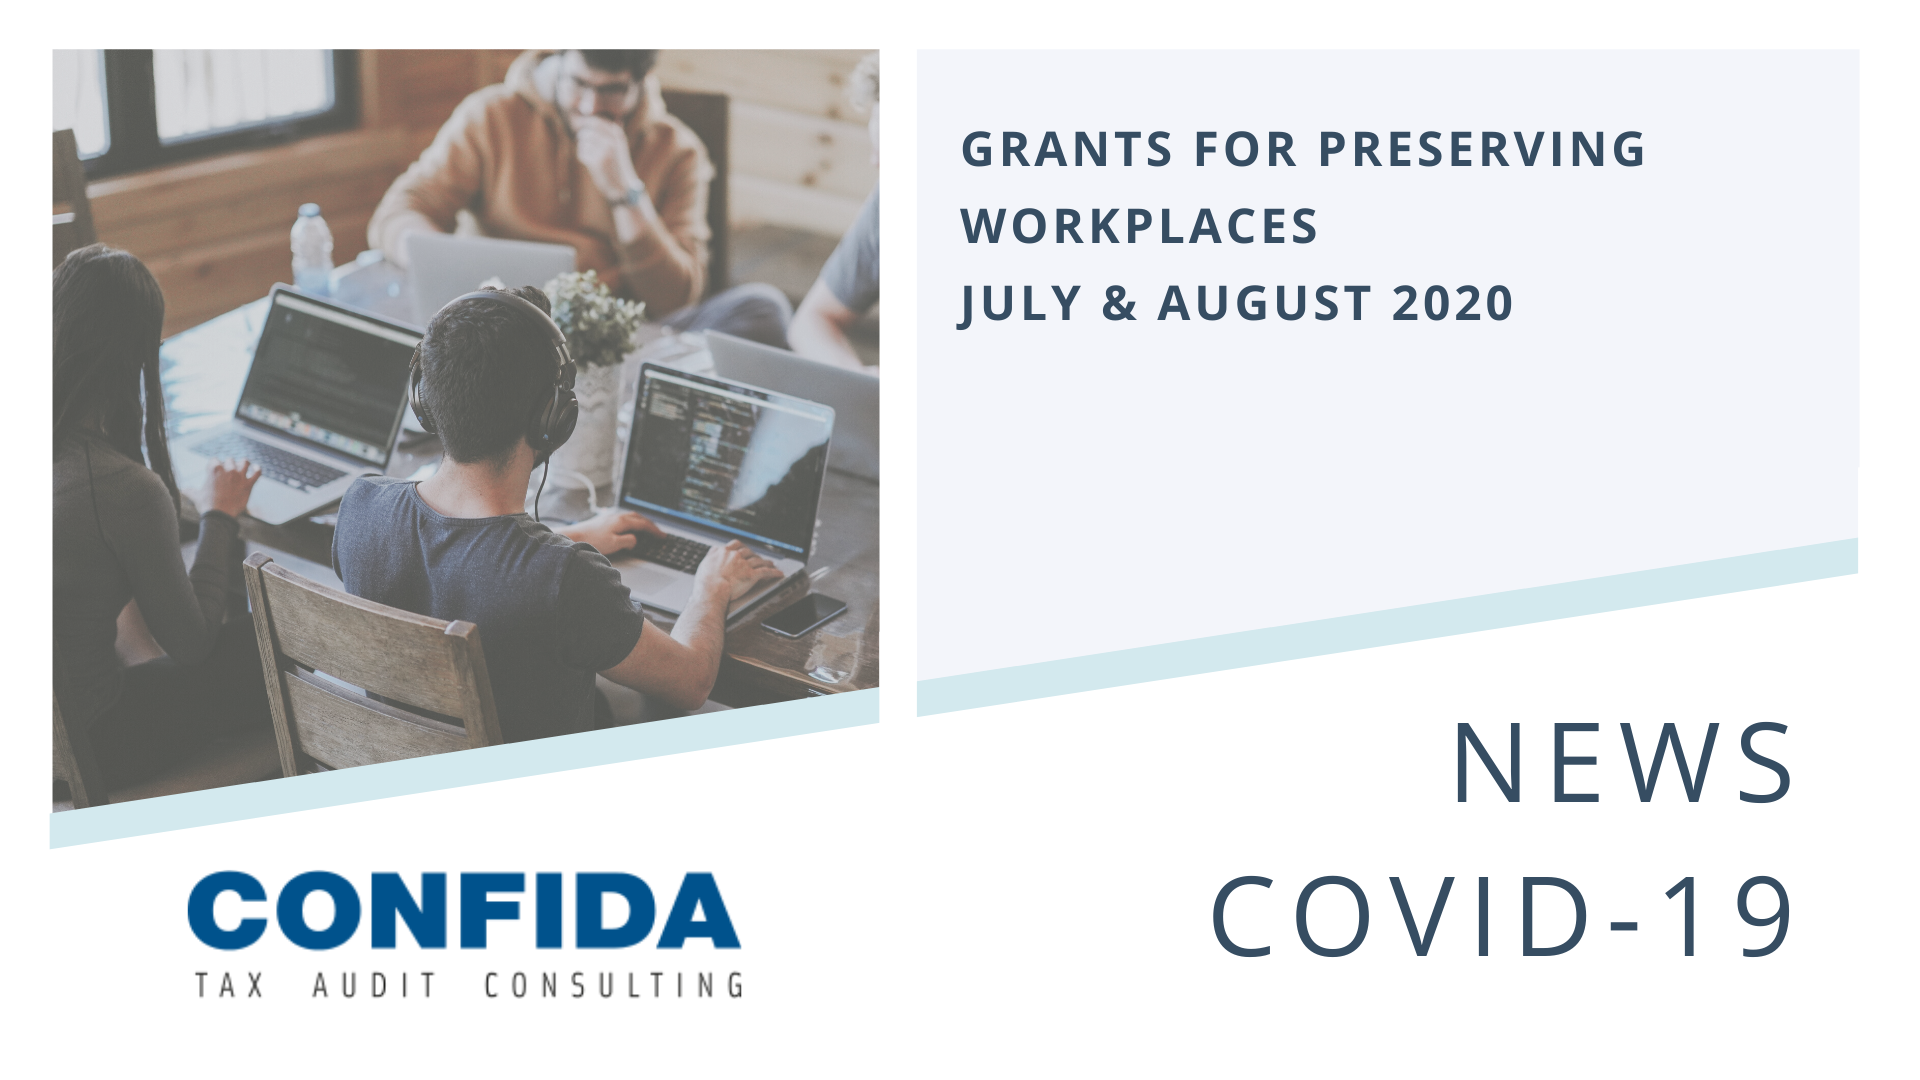 Grants for Preserving Workplaces – July & August 2020